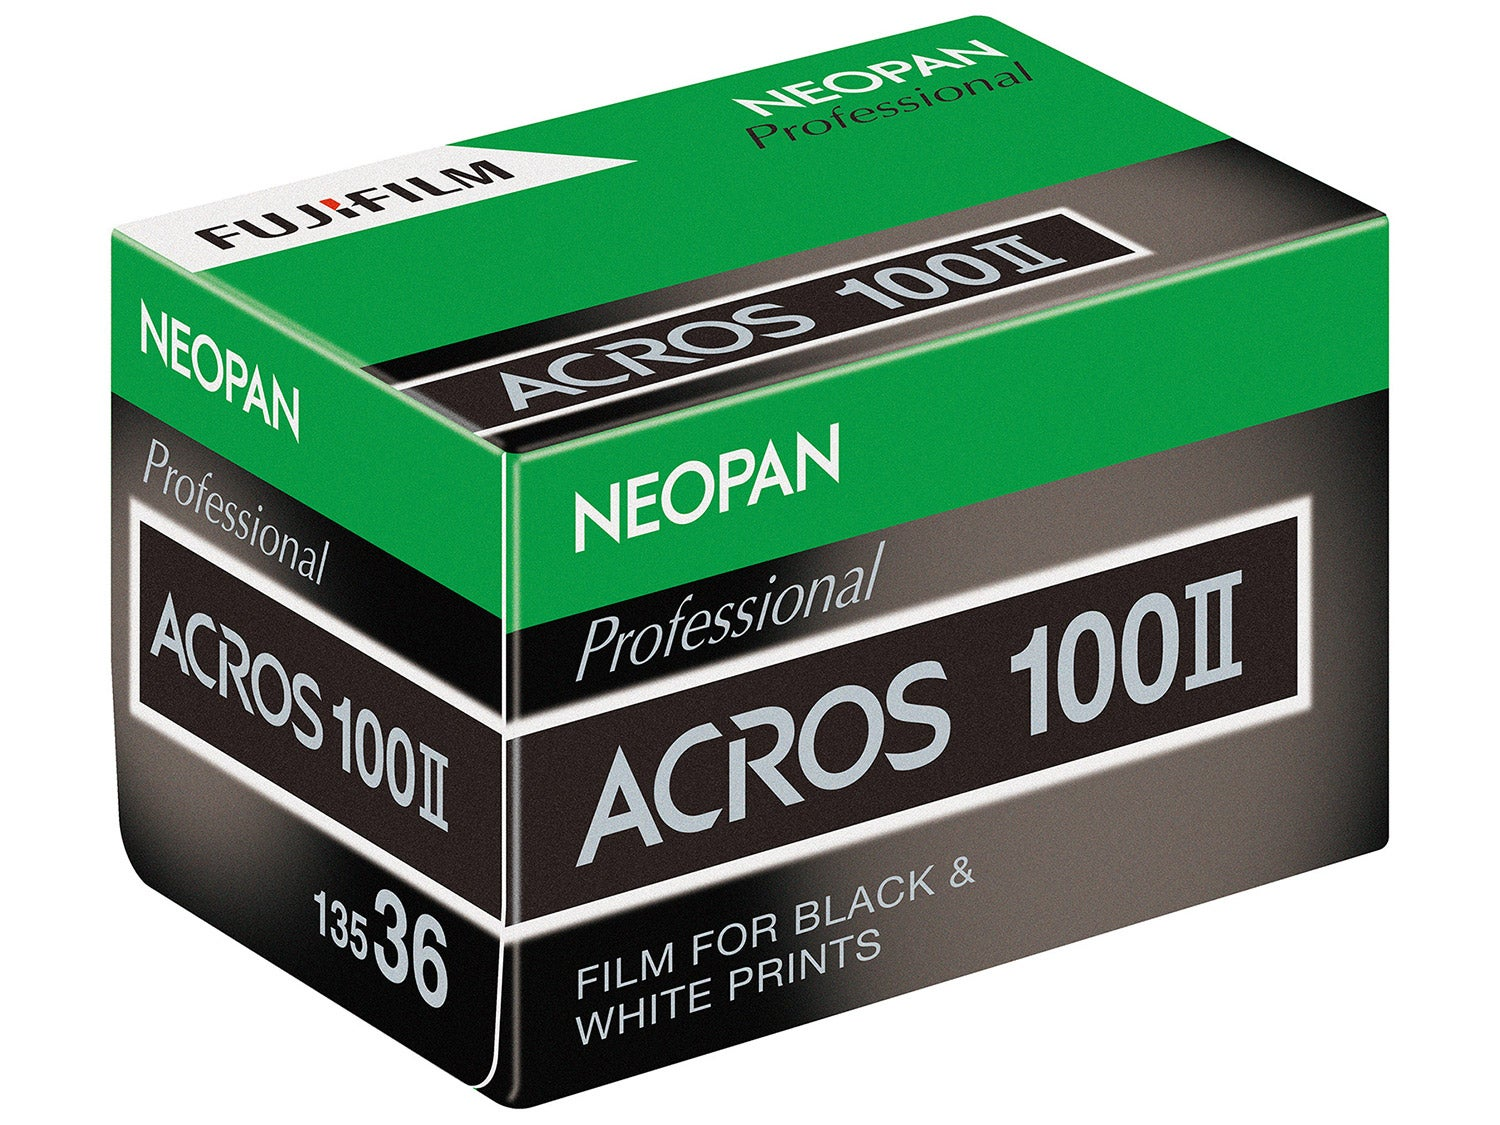 Fujifilm's upcoming Neopan Acros 100 II black-and-white film upgrades a classic stock